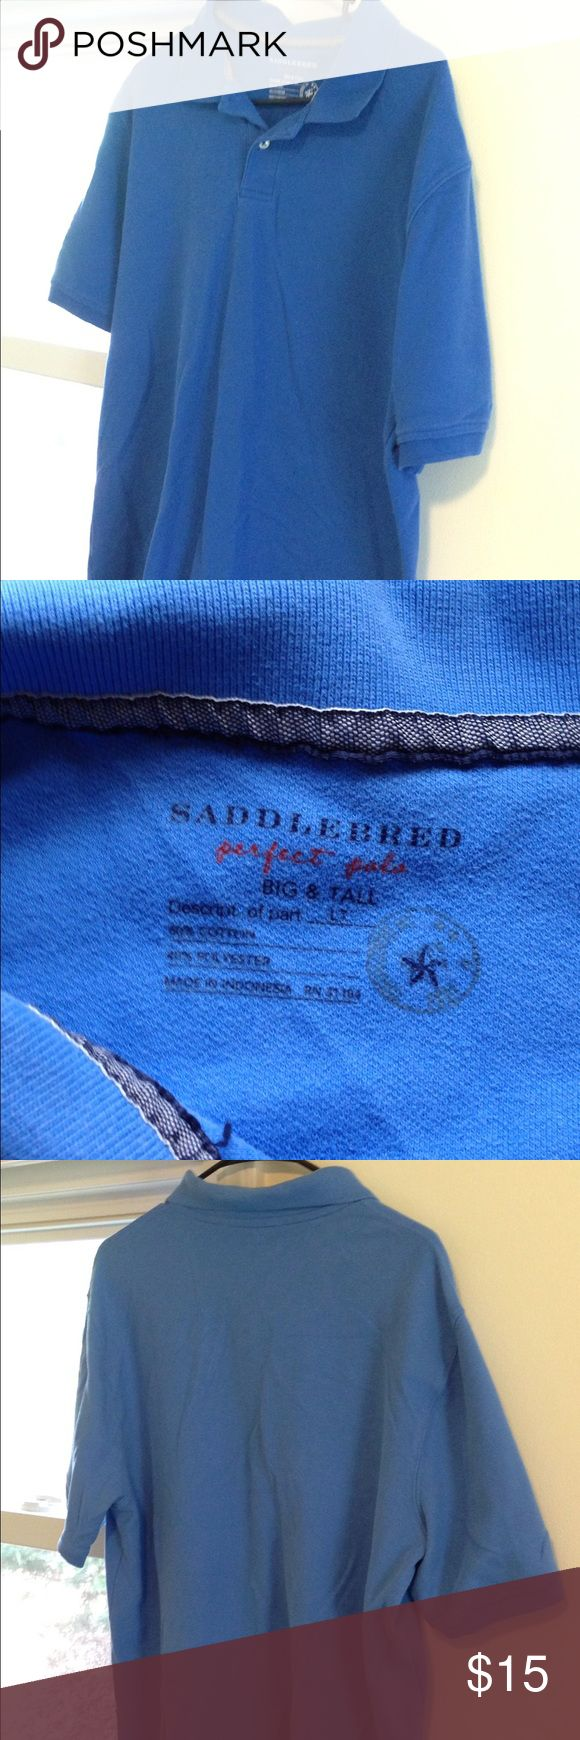 Large Tall Saddlebred Blue Men's Polo Shirt This Saddlebred polo shirt is in great used condition! It is a medium blue color. It's a size LT or Large and Tall Saddlebred Shirts Polos